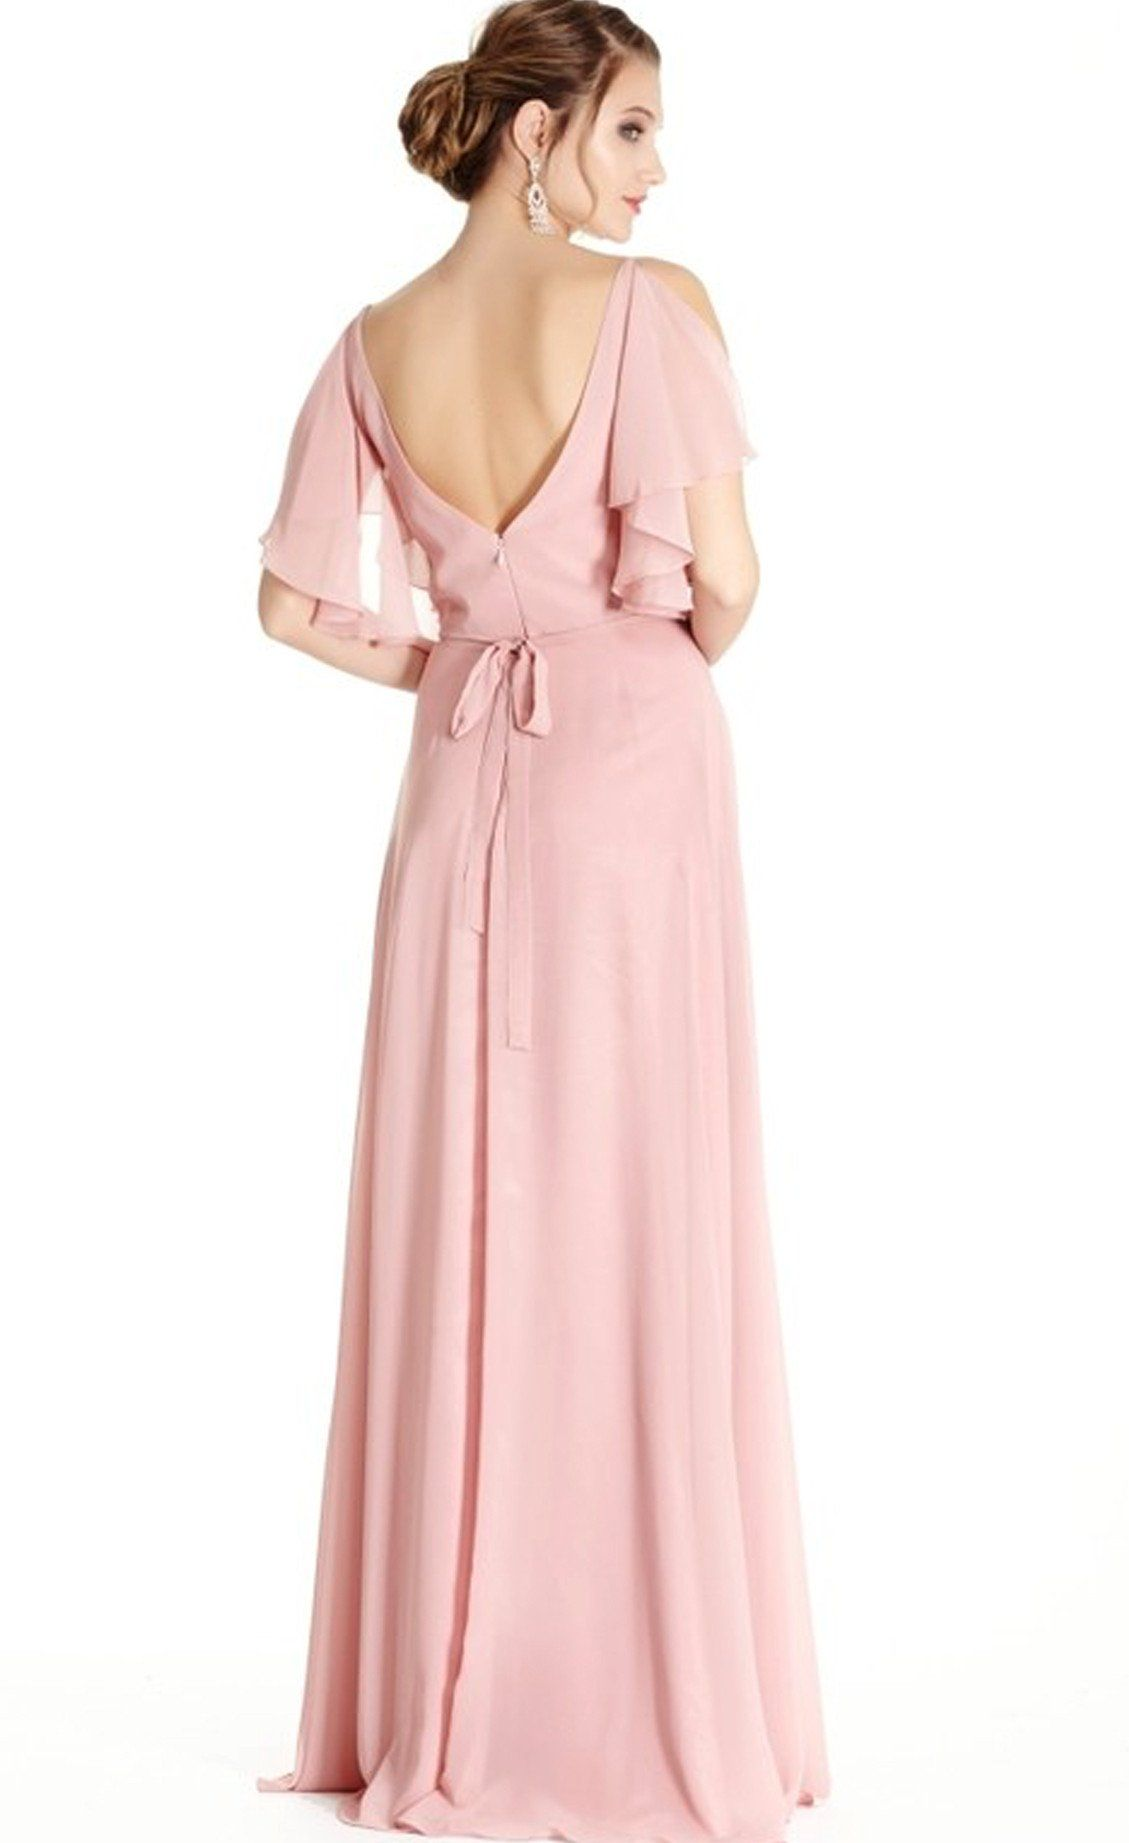 Serendipity Blush Flutter Sleeve Bridesmaids Dress | Vestidos de ...